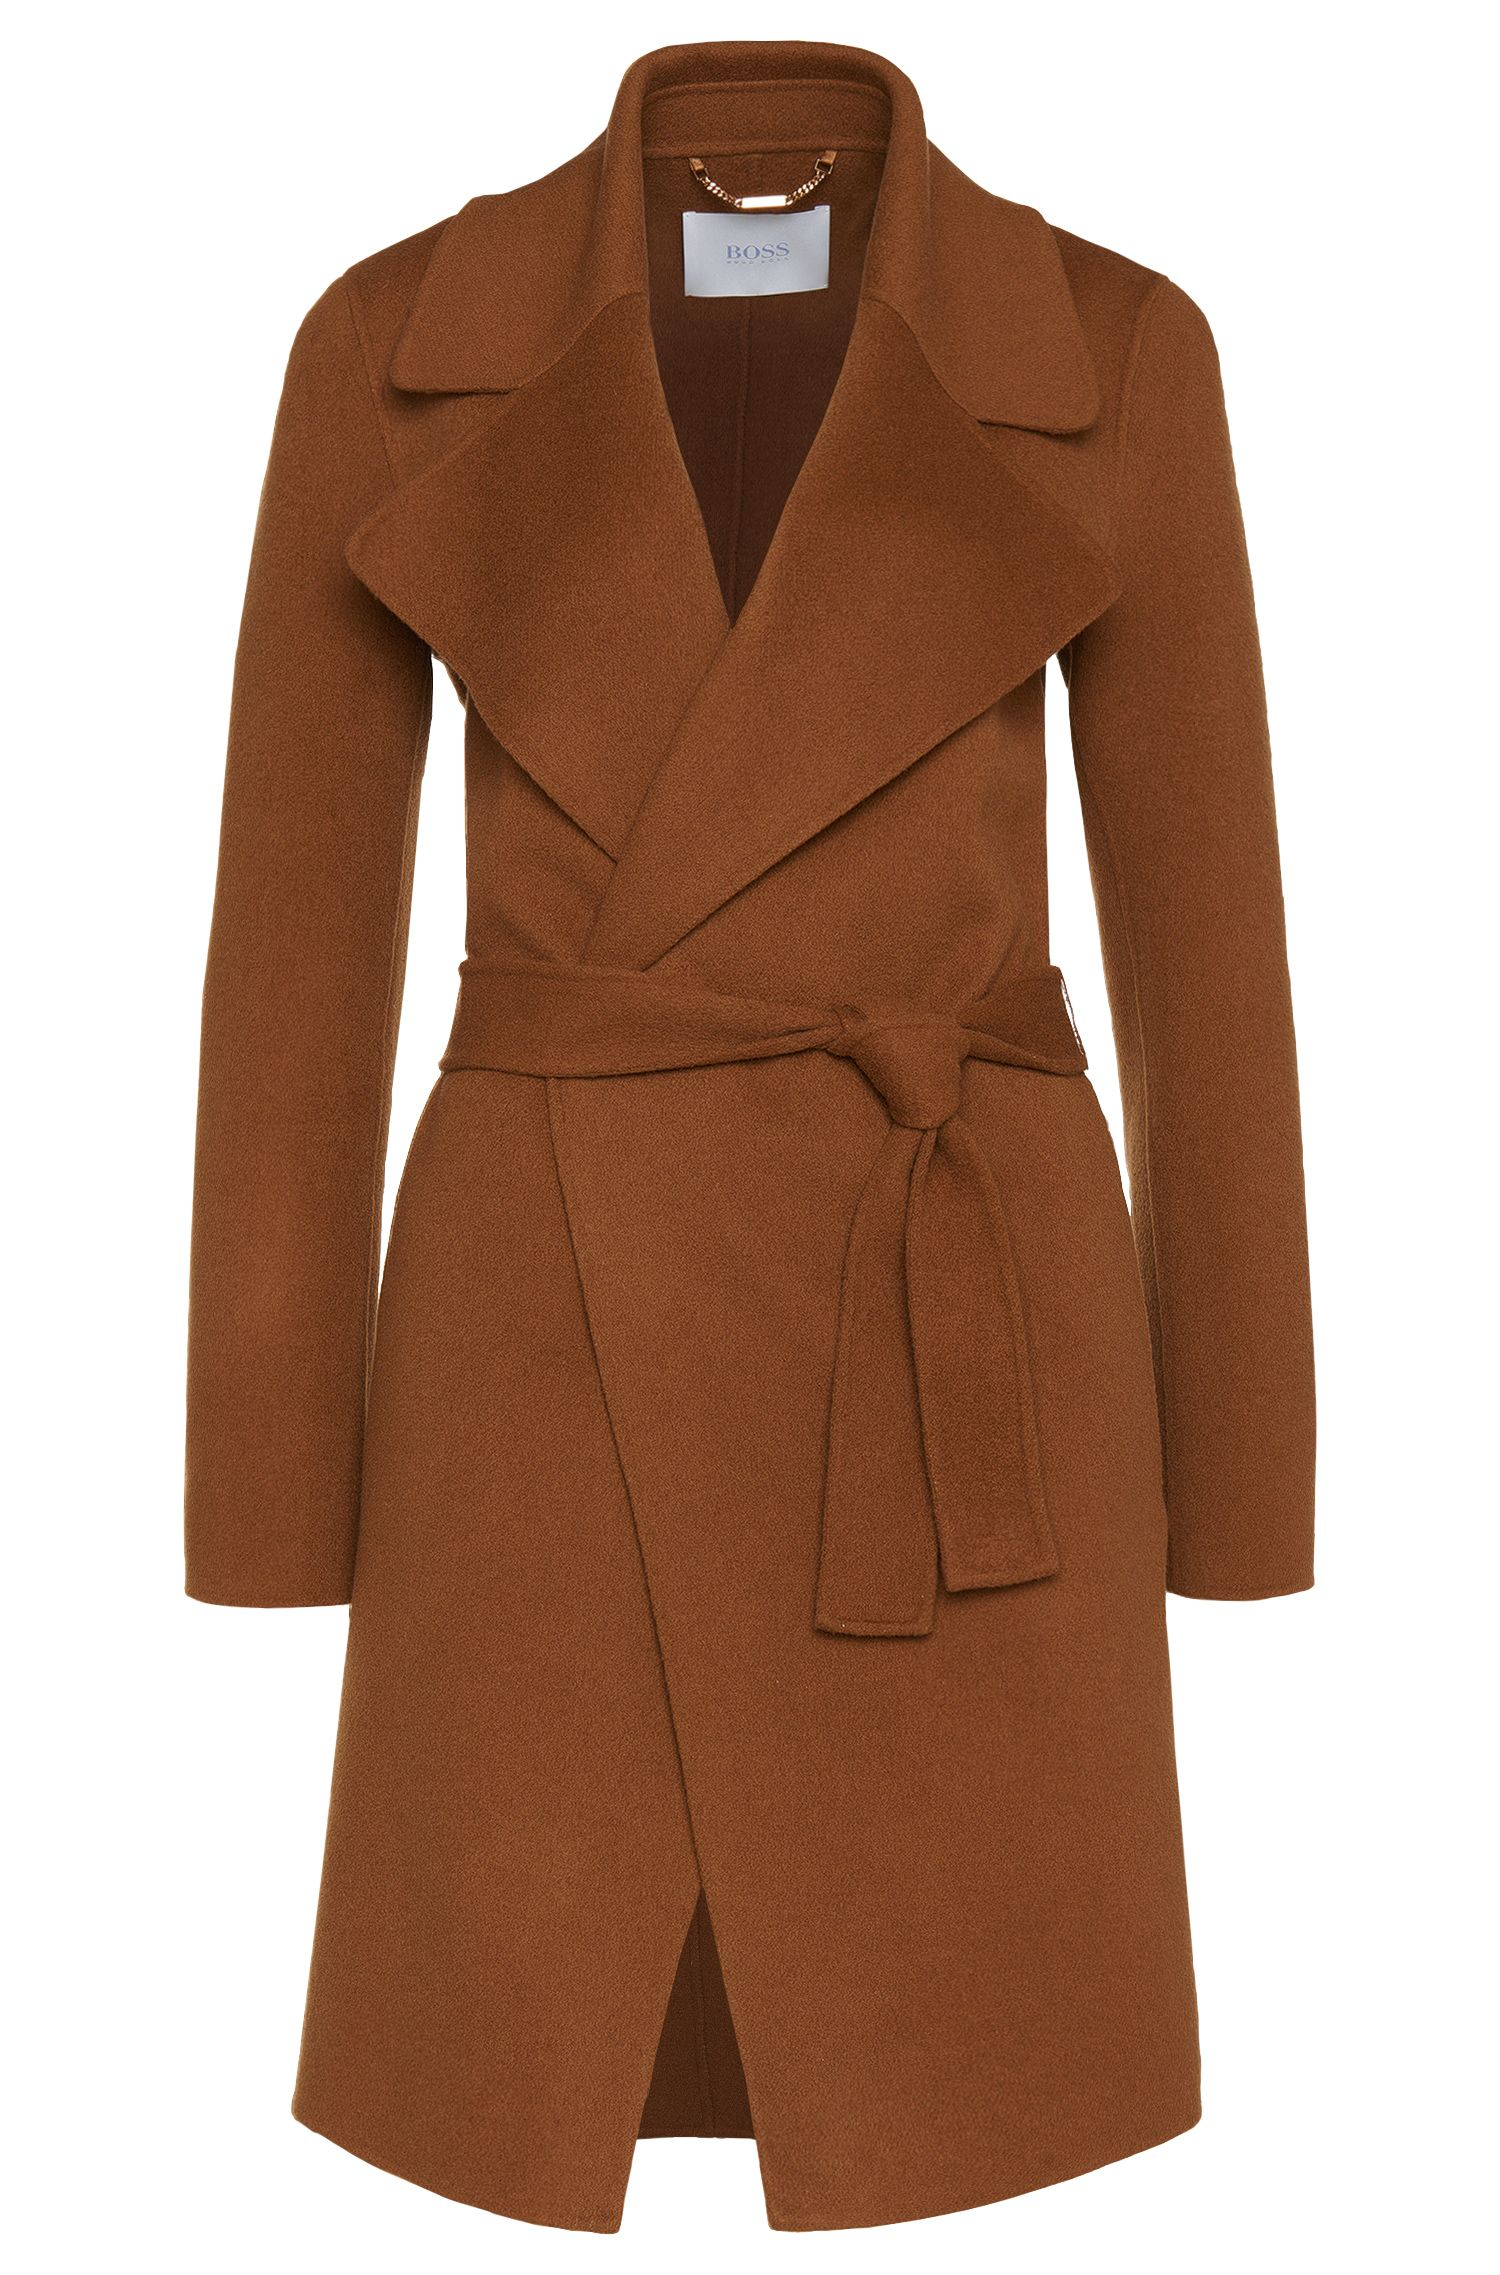 'Citana' | Wool Cashmere Belted Coat